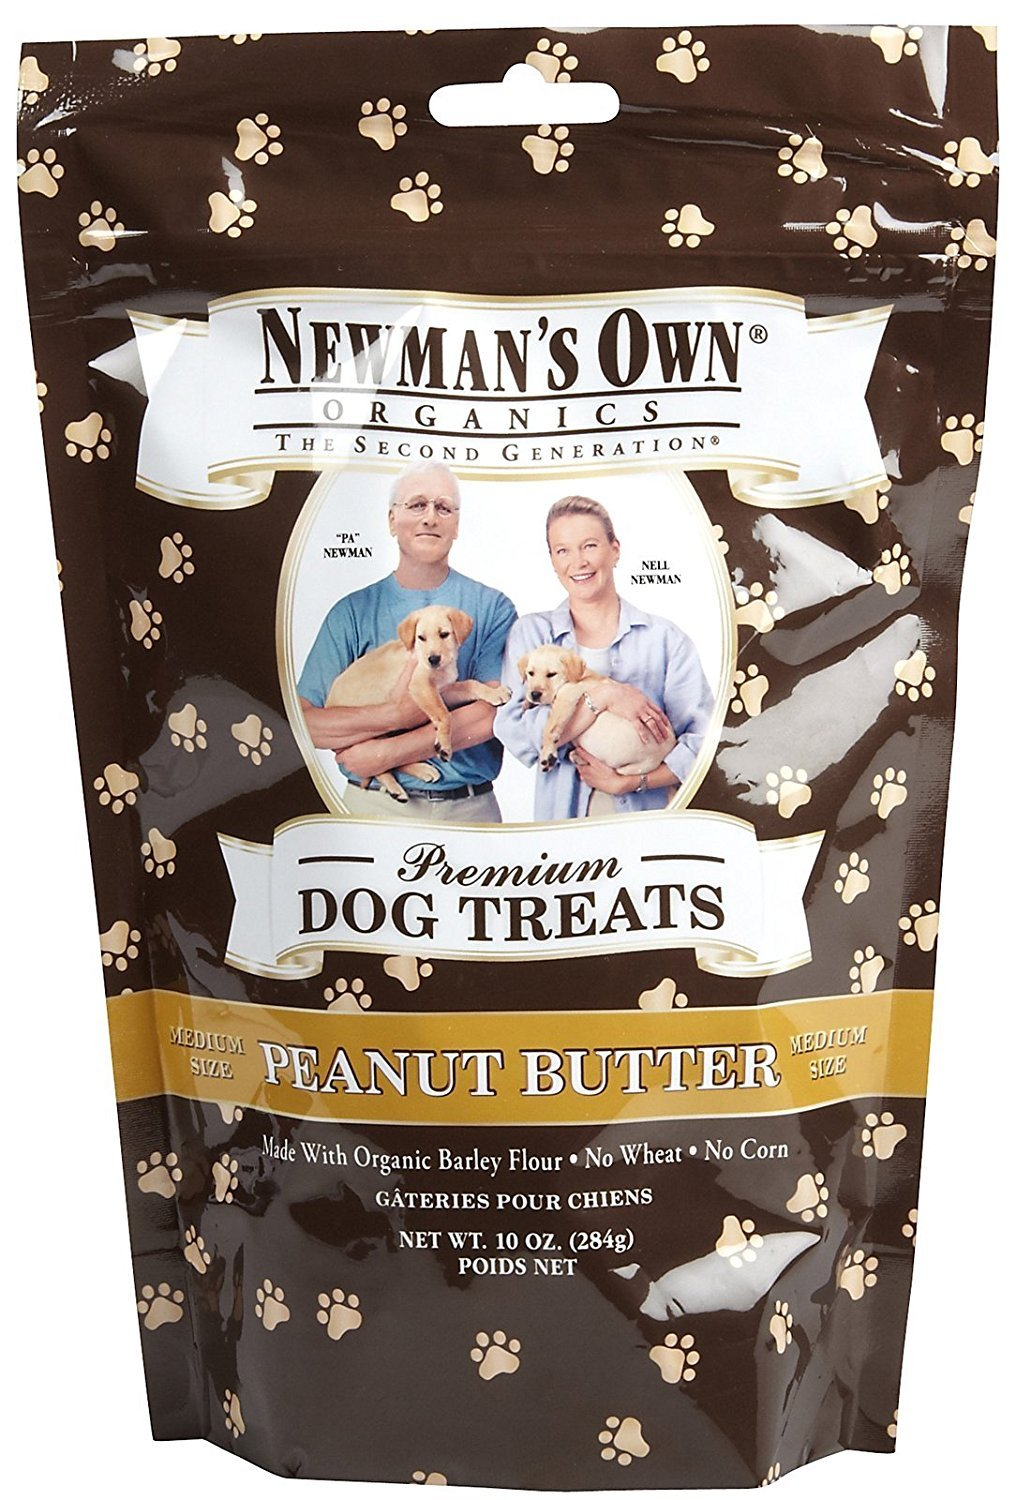 newmans-own-organics-premium-dog-treats-variety-pack